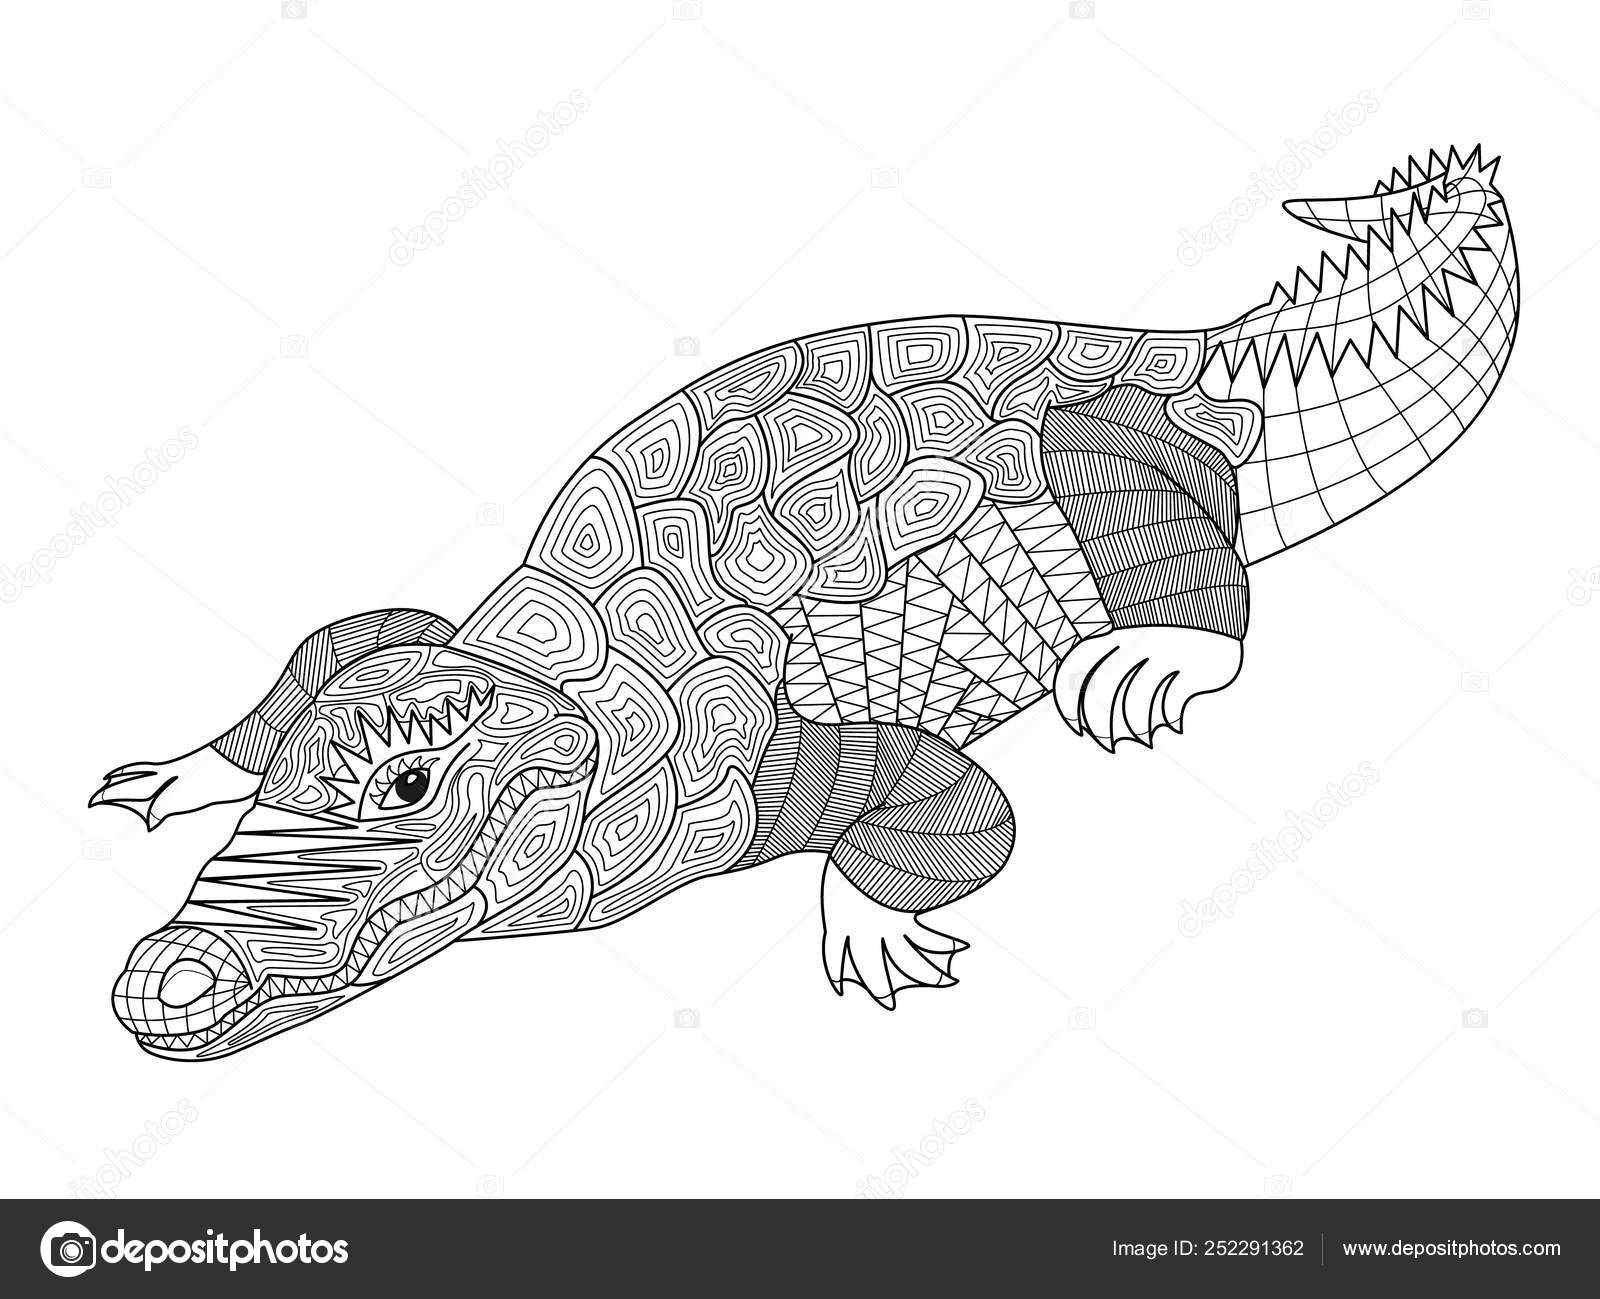 zentangle crocodile coloring for adults and children vector illustration of model anti coloring pages Crocodile Coloring Page